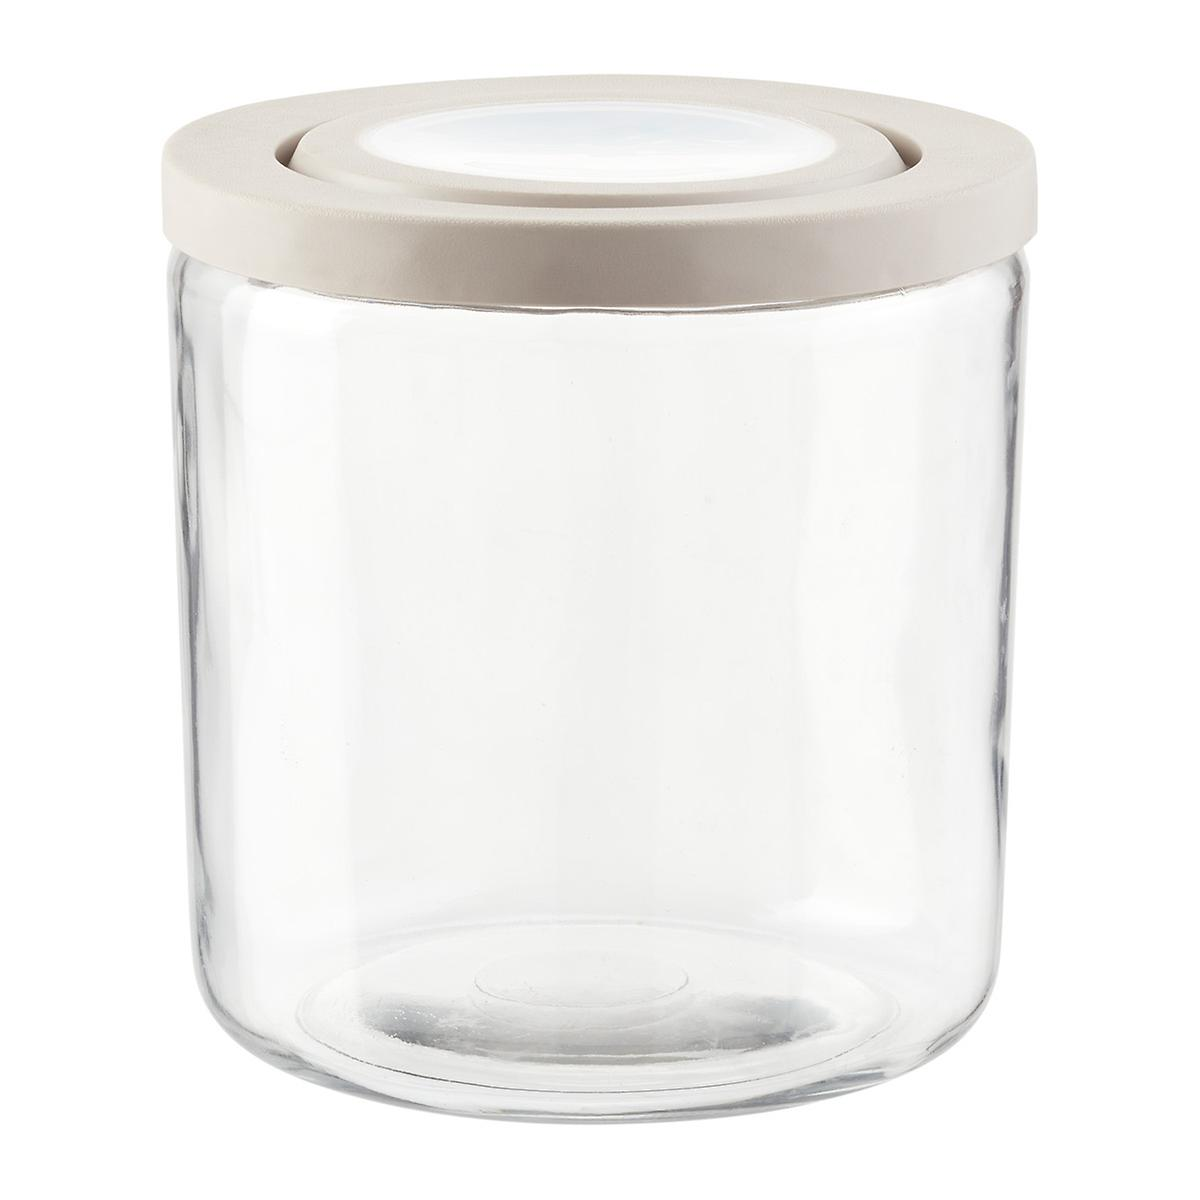 Anchor Hocking Truefit Glass Jars With Grey Lids The